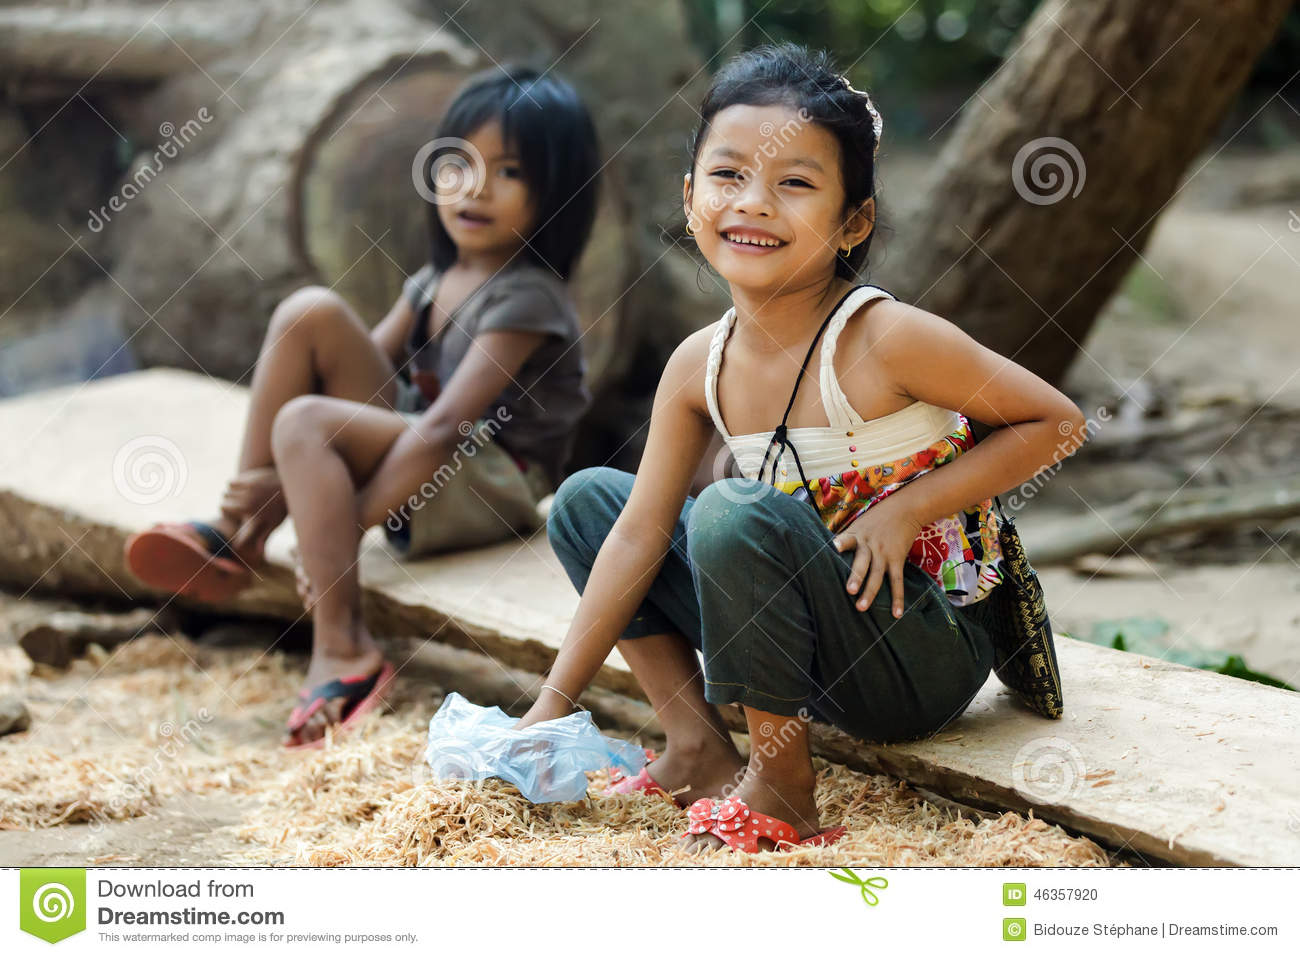 cambodia-nude-young-girl